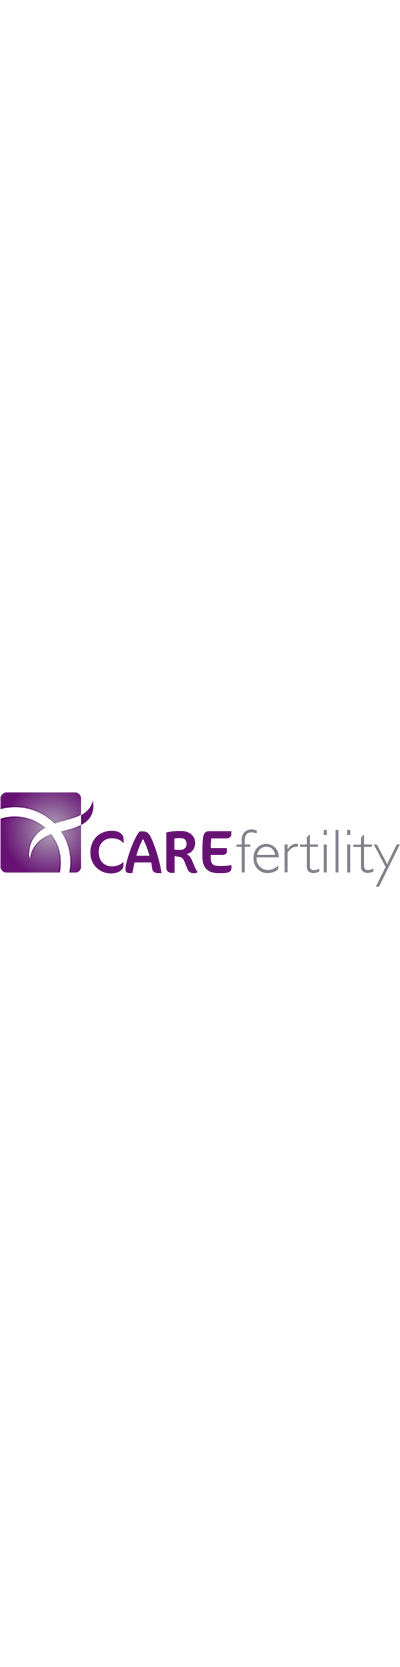 CARE_Fertility_logo copy.jpg